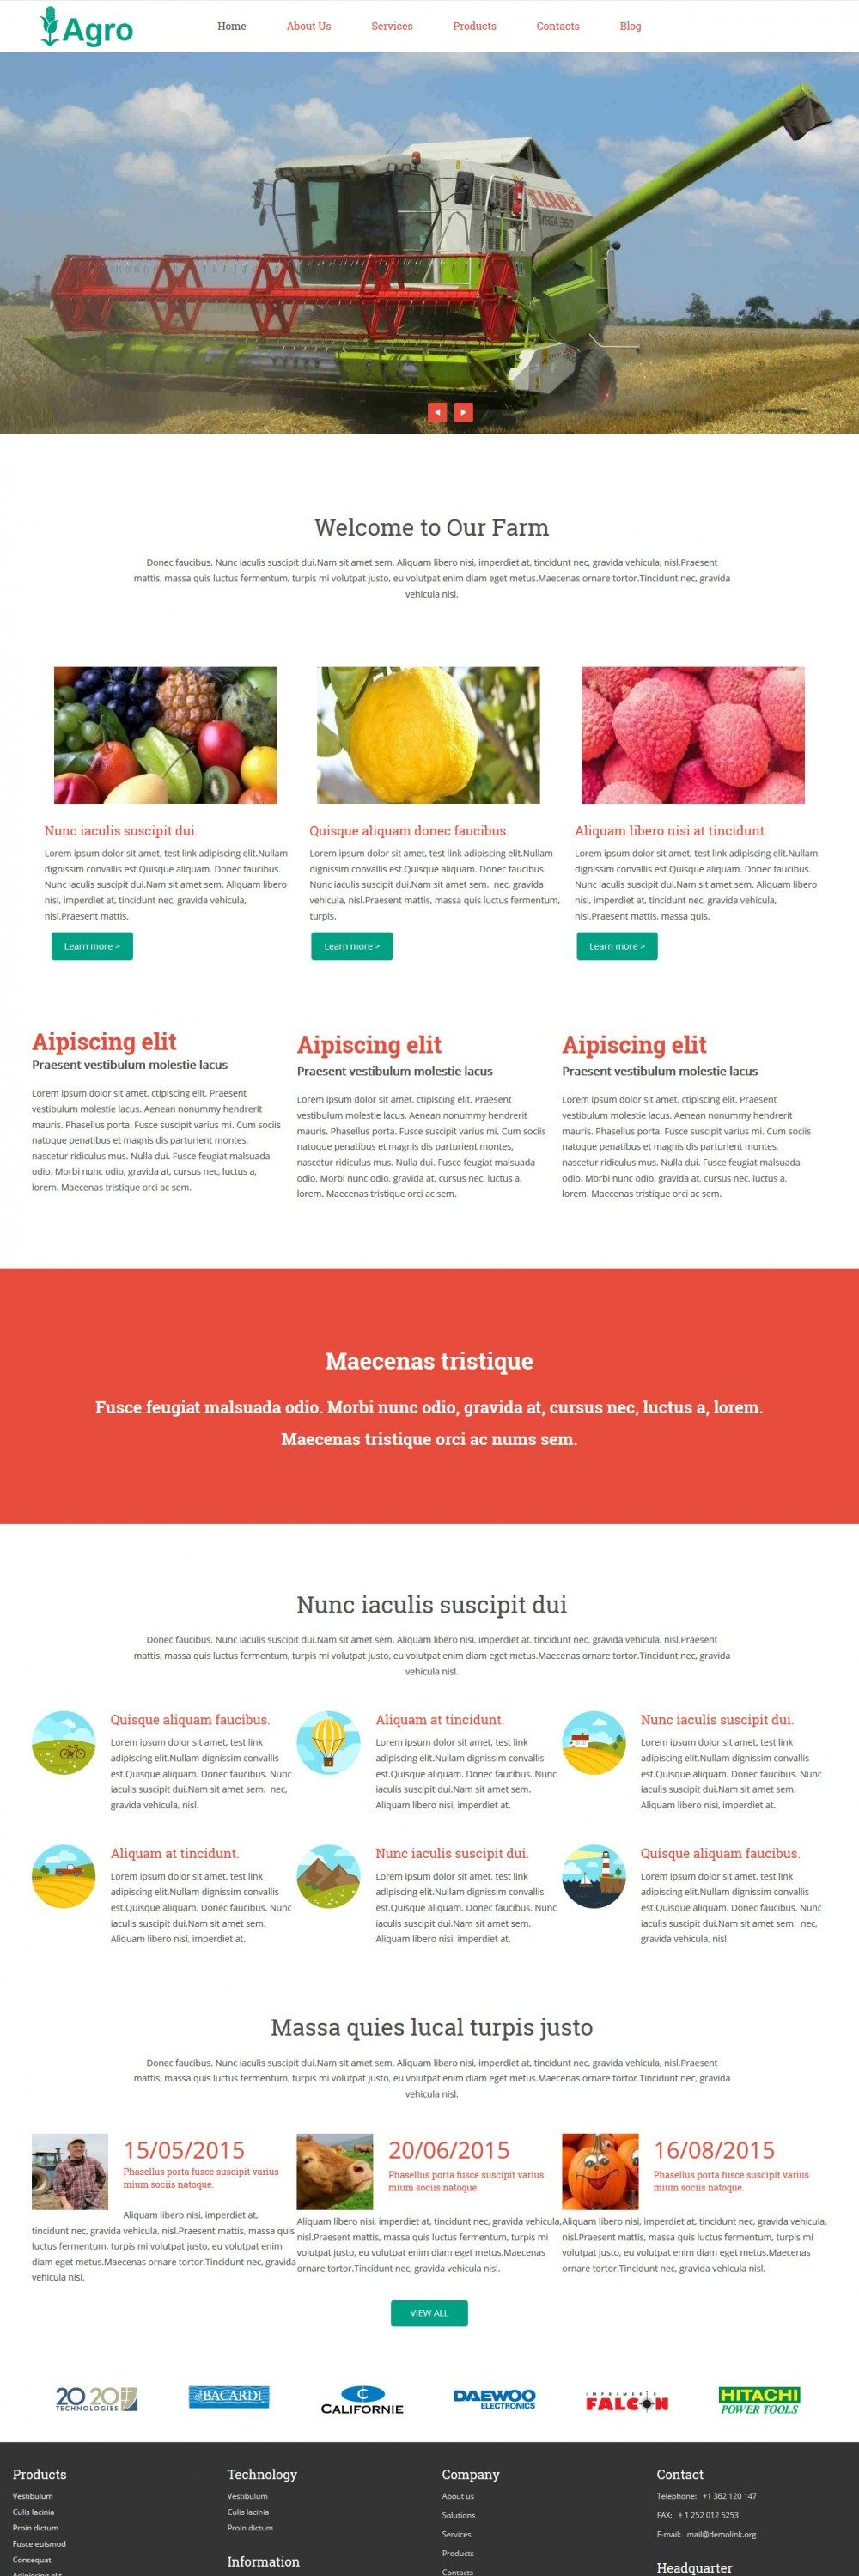 Agro - Agricultural Drupal Theme for Farms